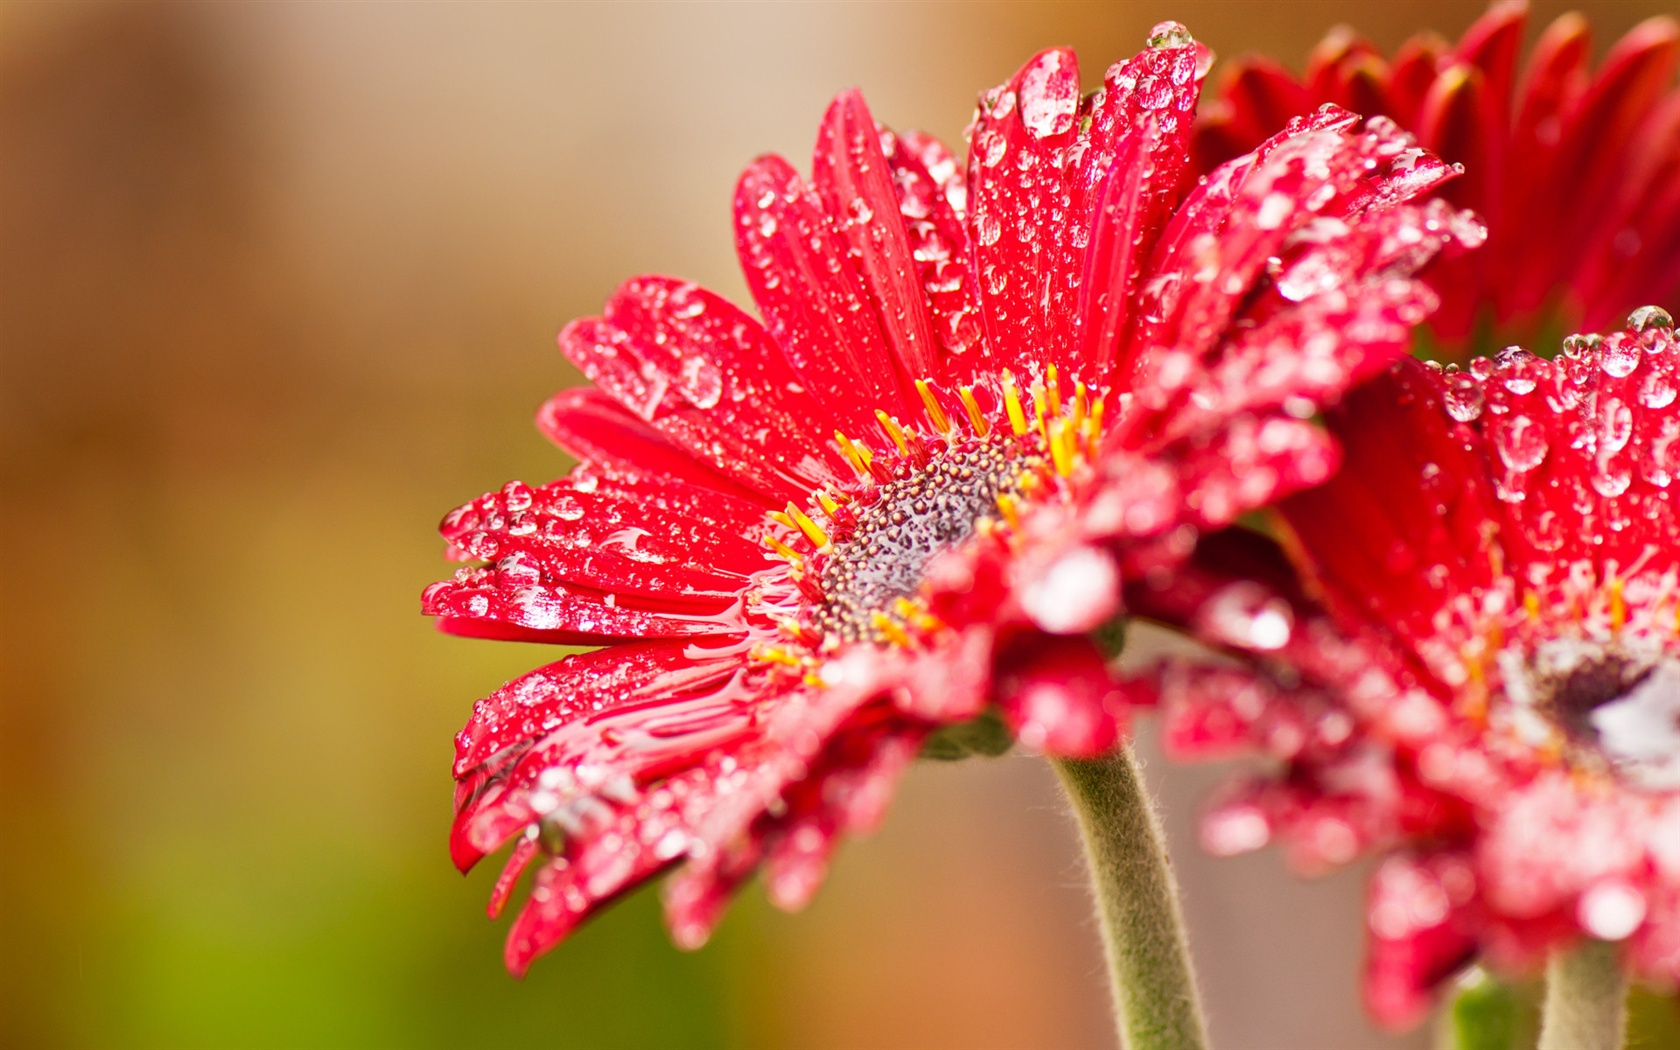 Red gerbera flowers after rain wallpaper - 1680x1050